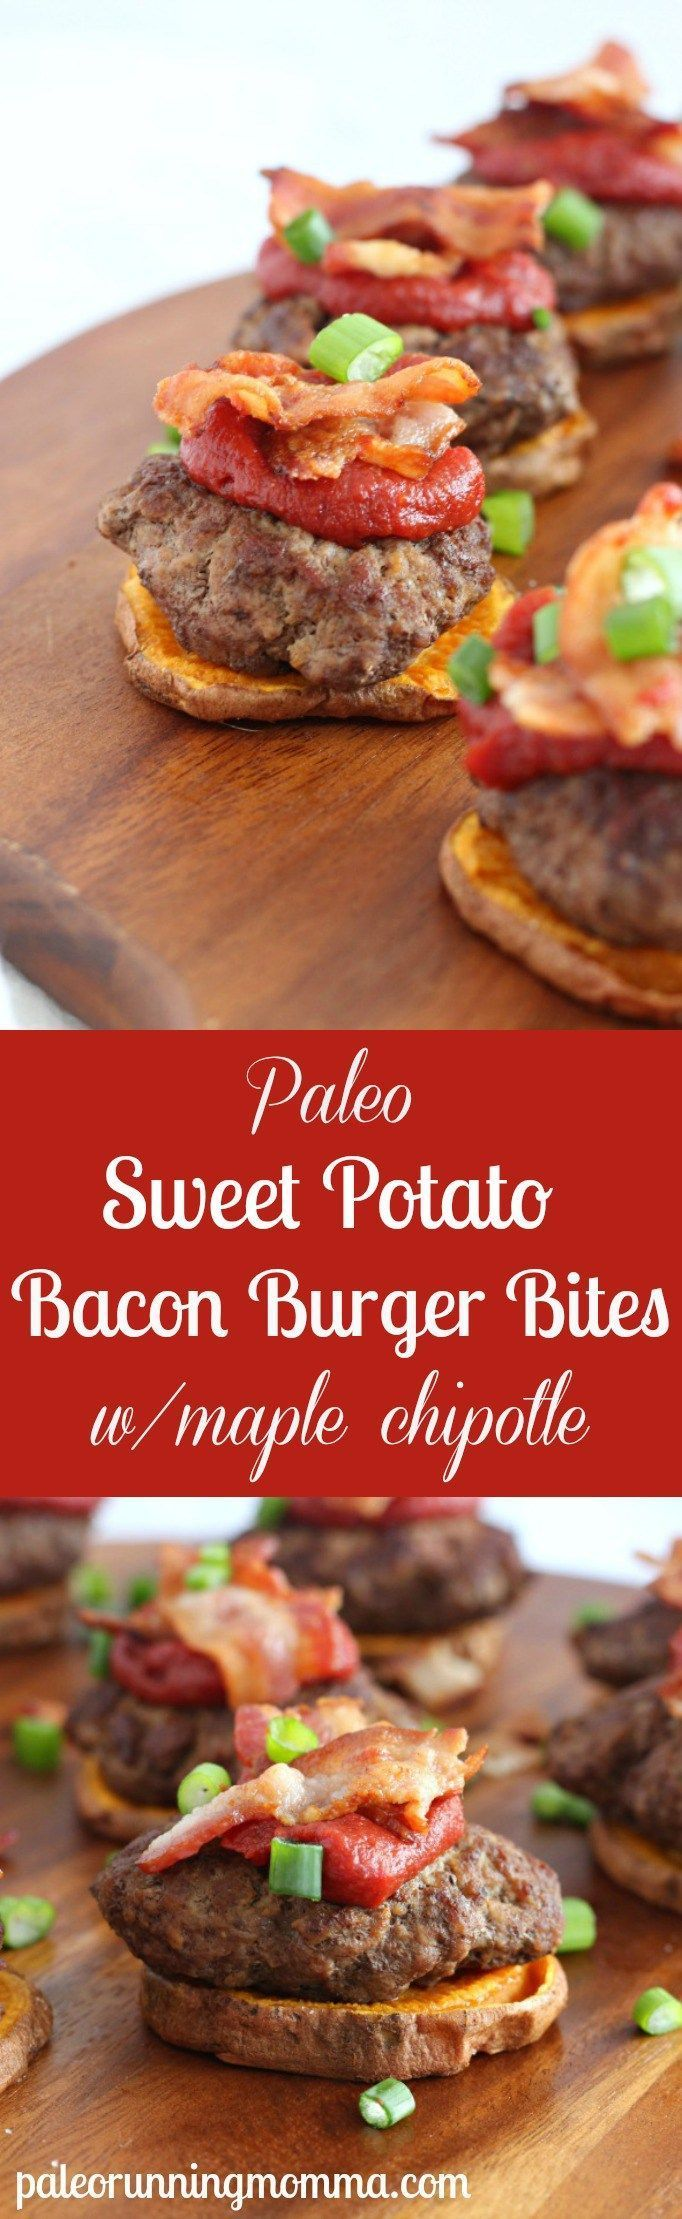 Paleo Sweet Potato Bacon Burger Bites with Maple Chipotle Ketchup - #grainfree… http://www.paleorunningmomma.com/sweet-potato-bacon-burger-bites-with-maple-chipotle-paleo/